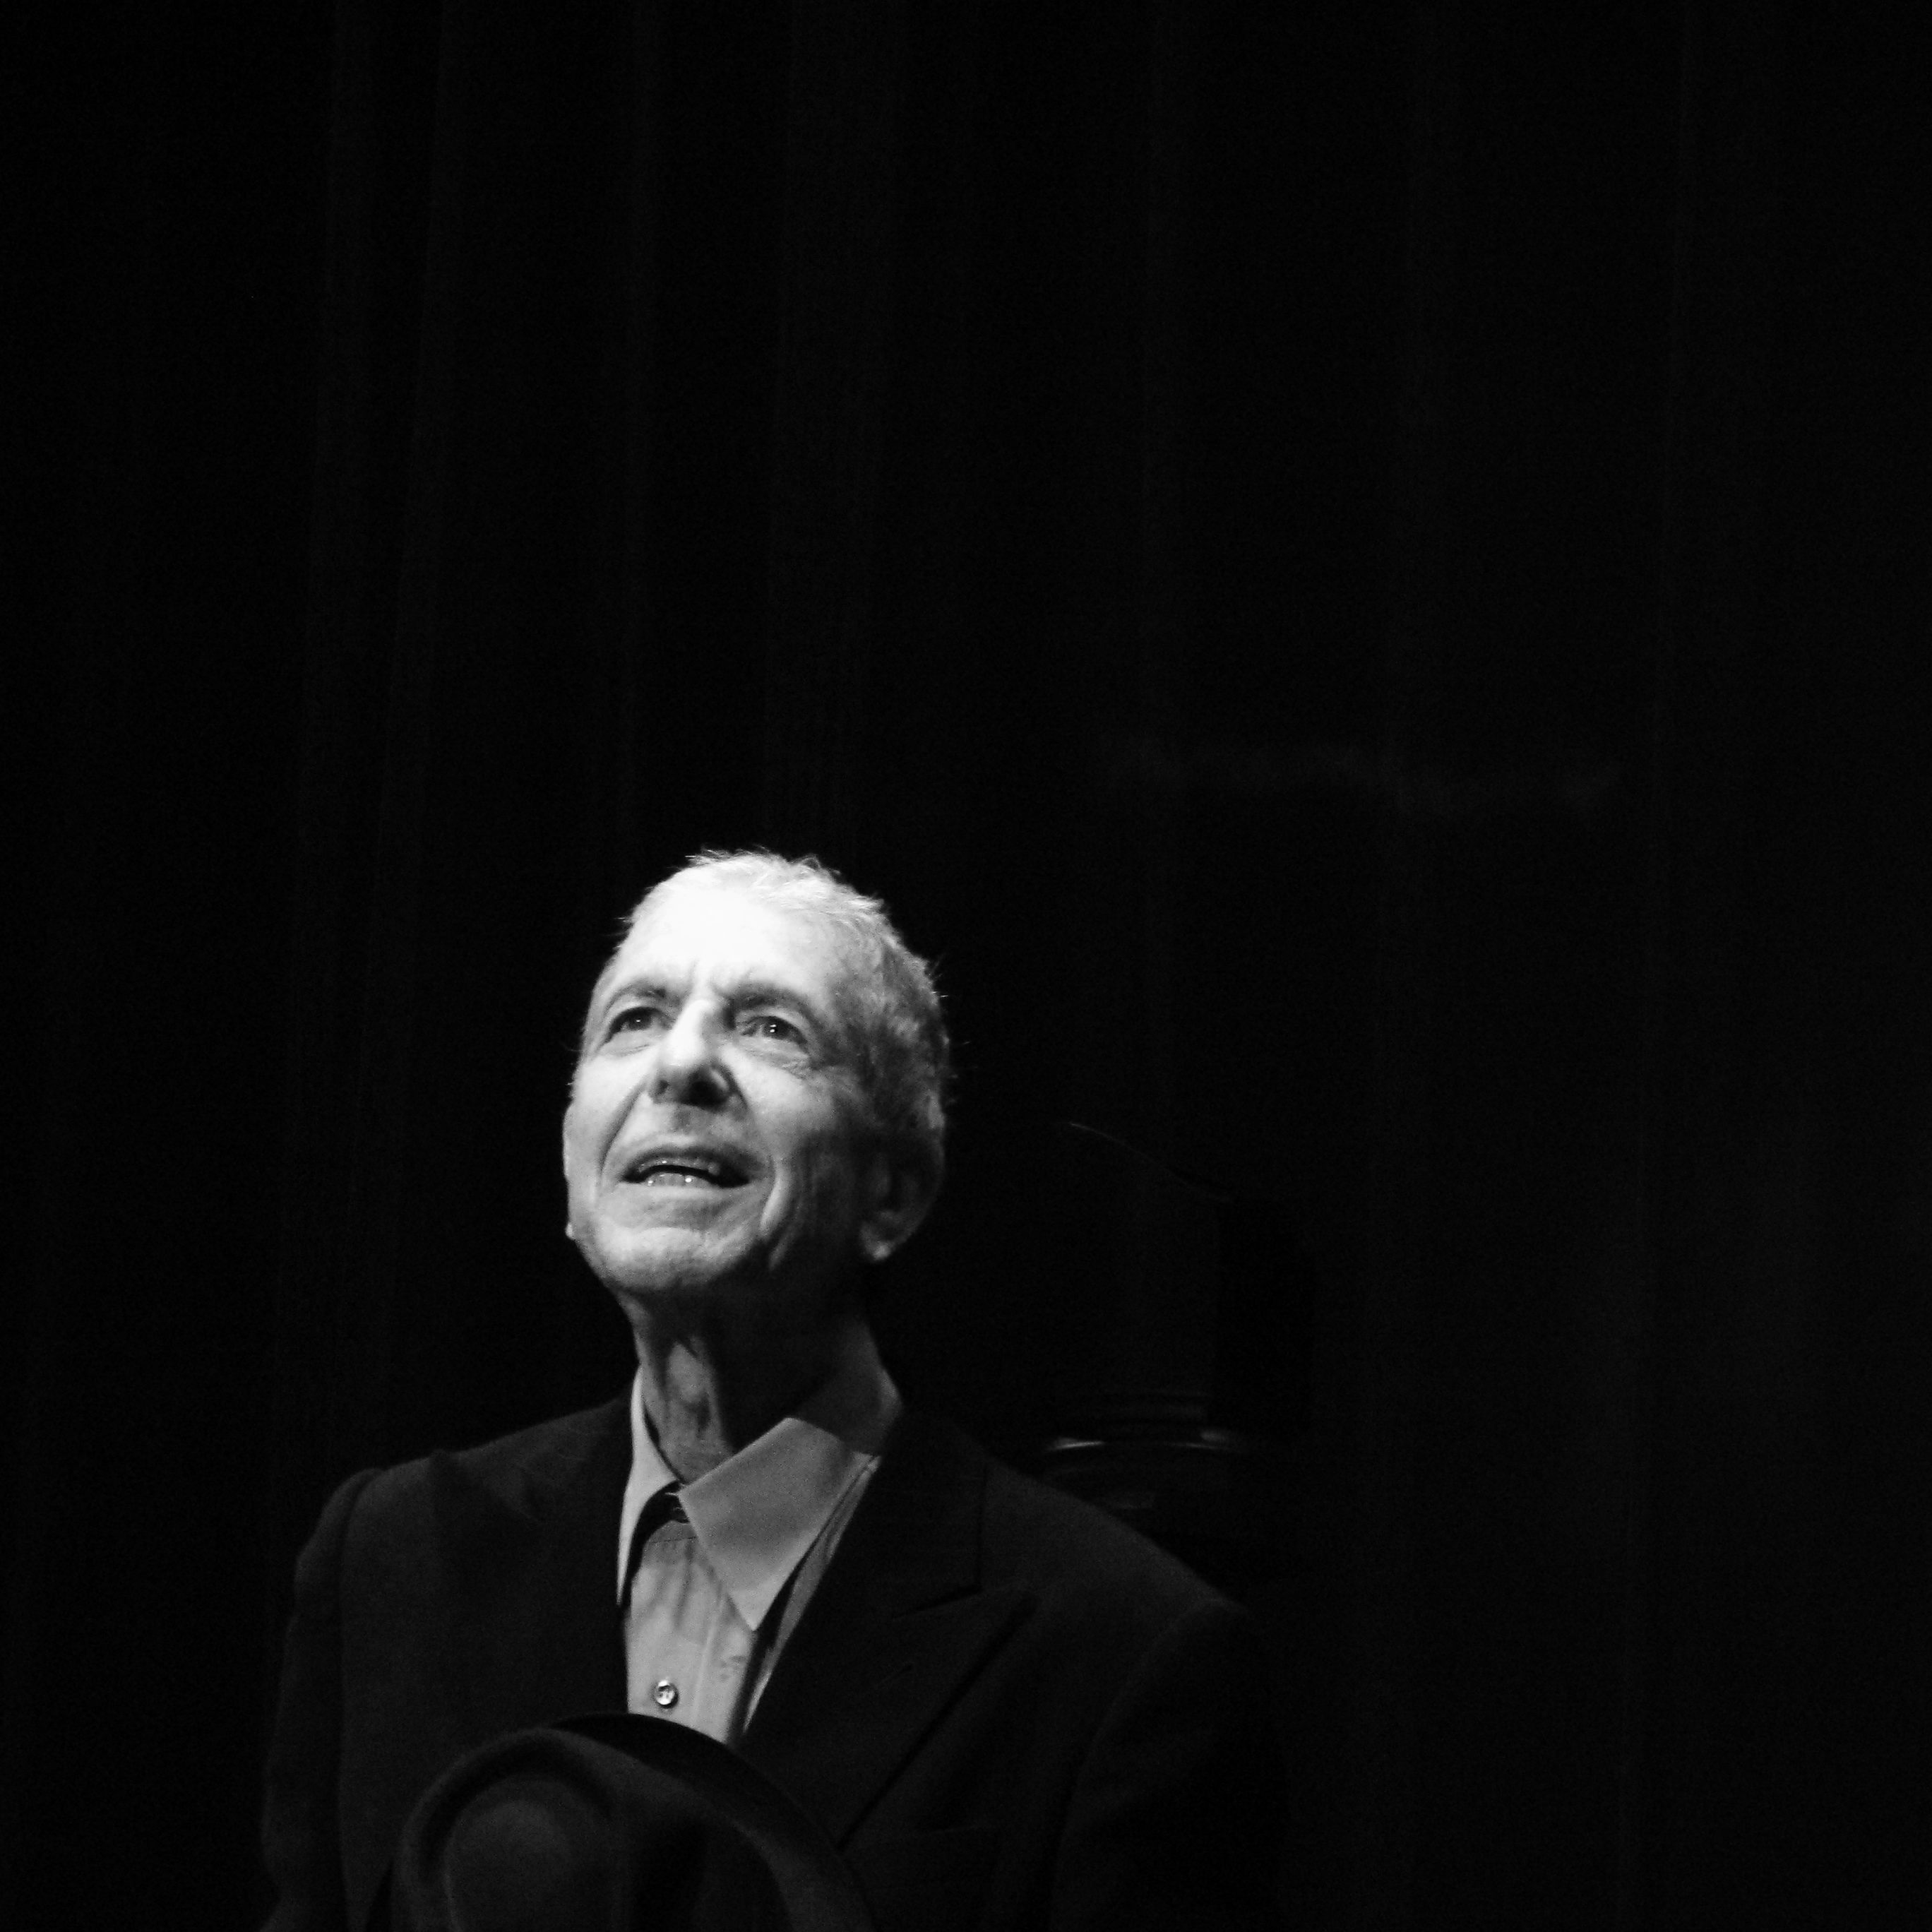 http://upload.wikimedia.org/wikipedia/commons/b/b8/Leonard_Cohen_2181.jpg